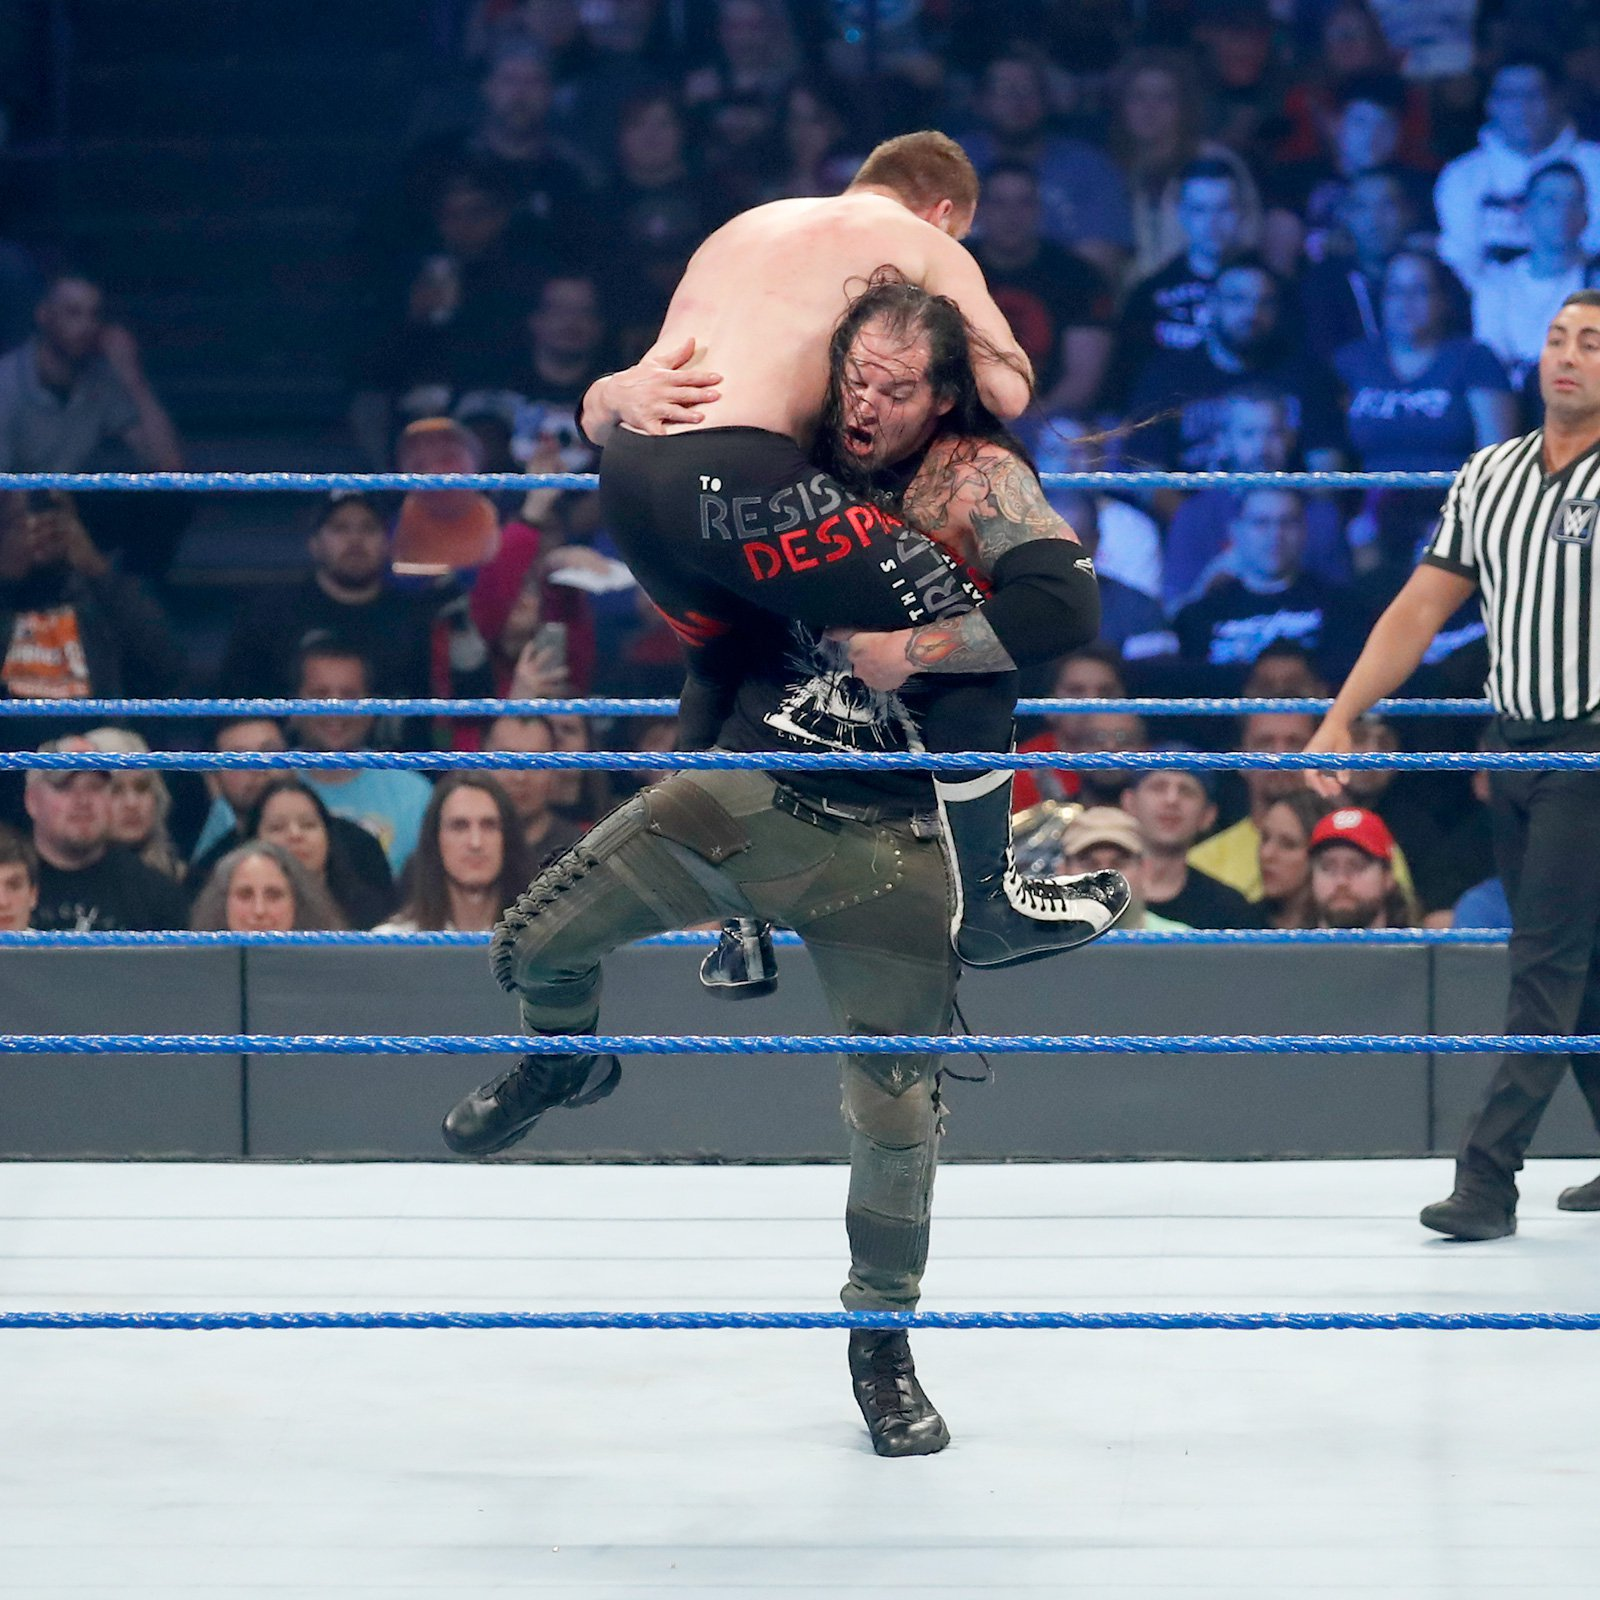 Corbin takes down Zayn with a powerful slam.